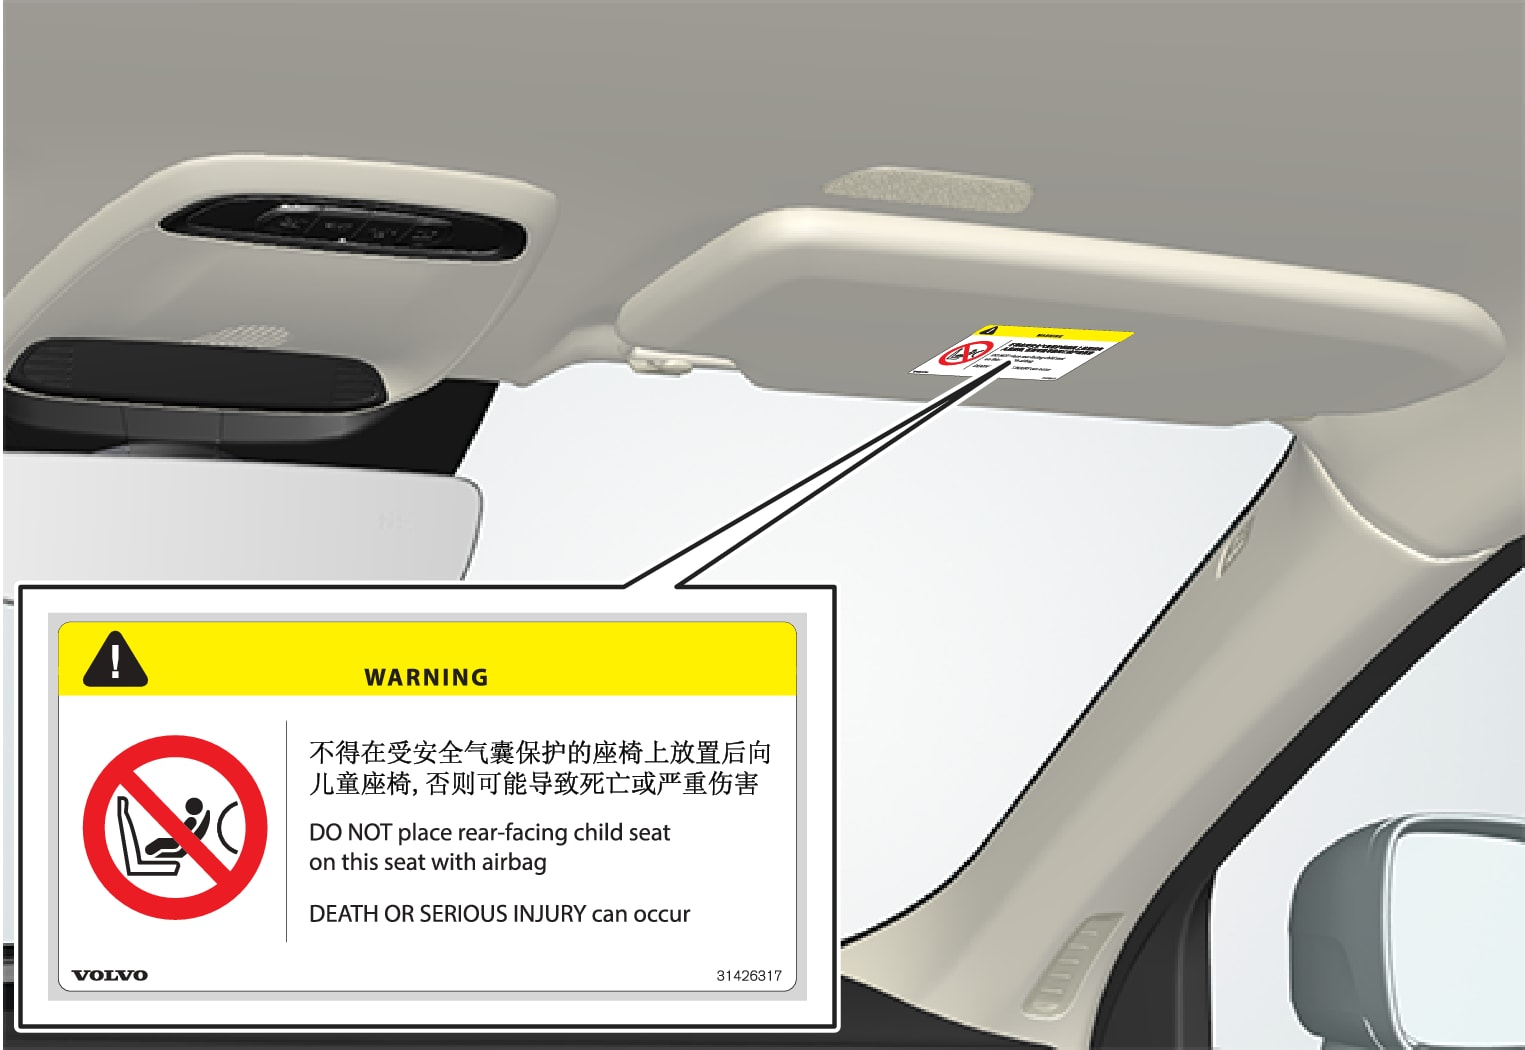 P5-1507–Safety–Airbag decal placement China 1